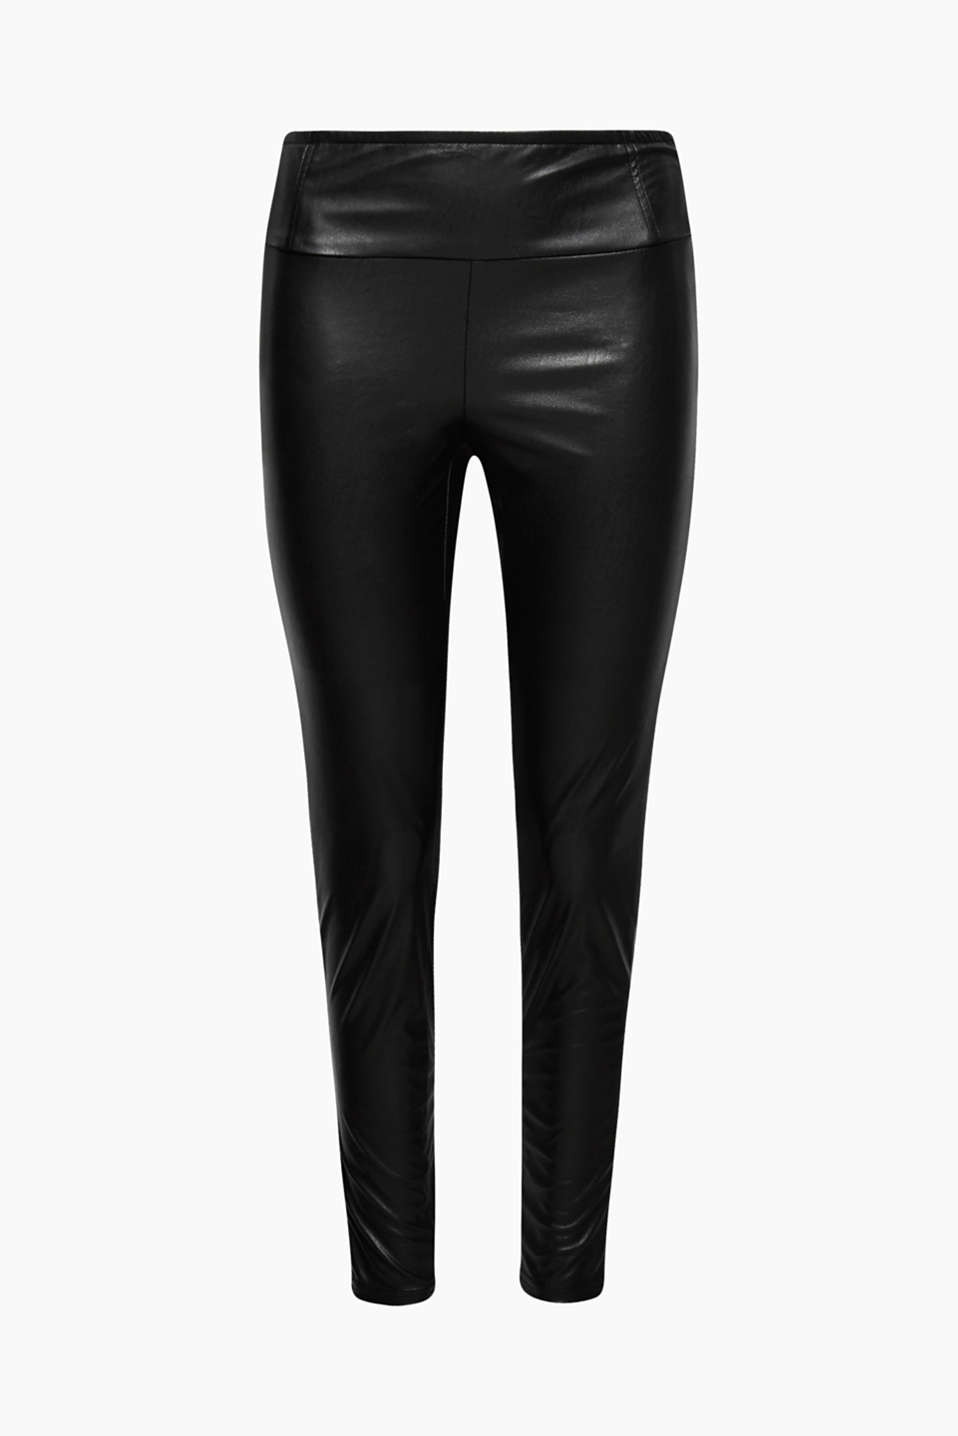 These figure-hugging trousers in high-quality faux leather will give your outfits a rock star twist.